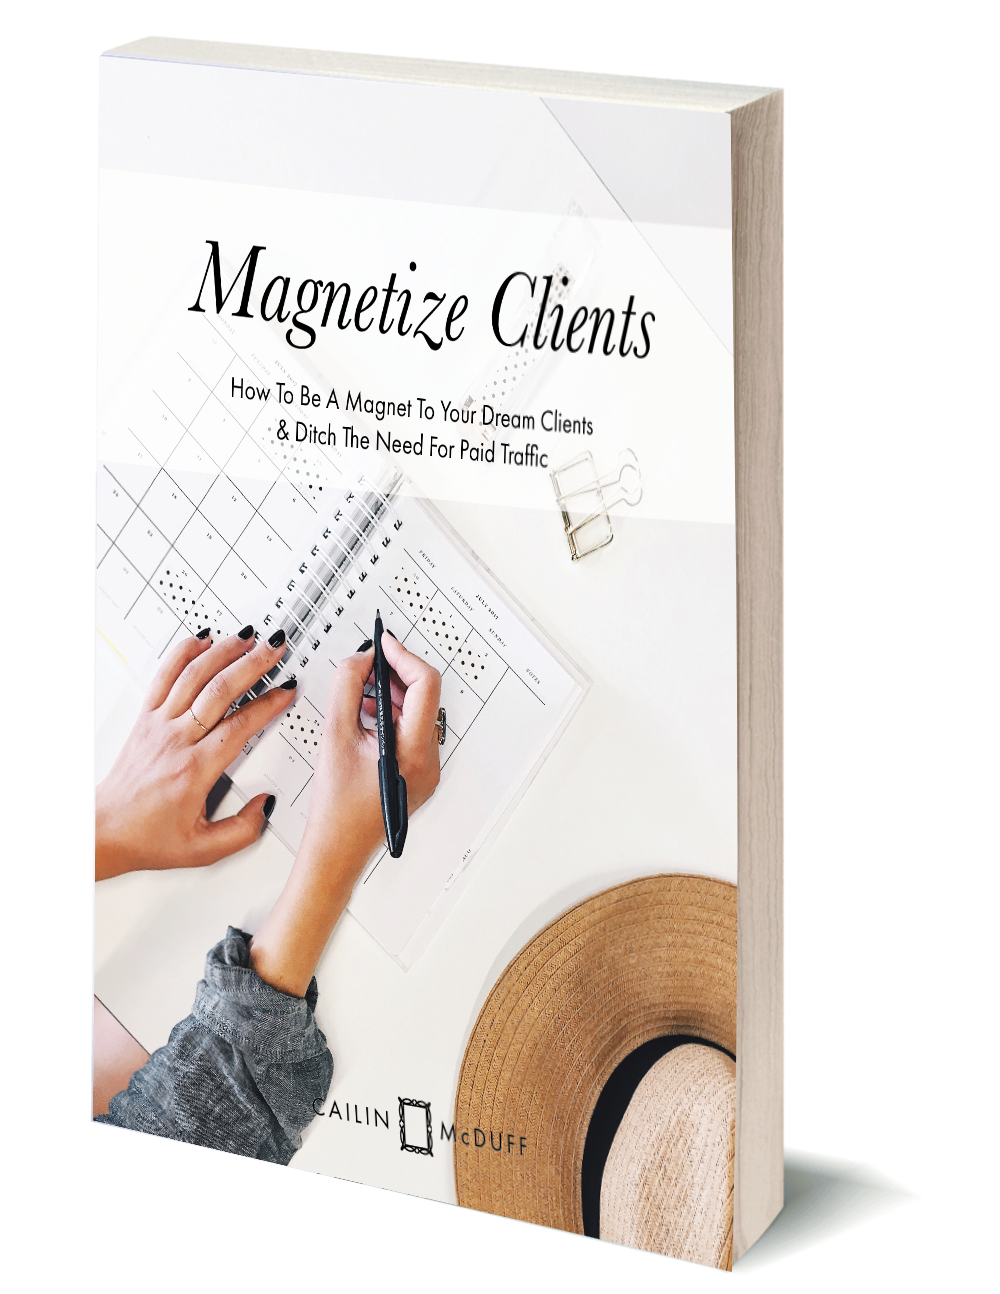 Magnetize Clients Ebook Image.png